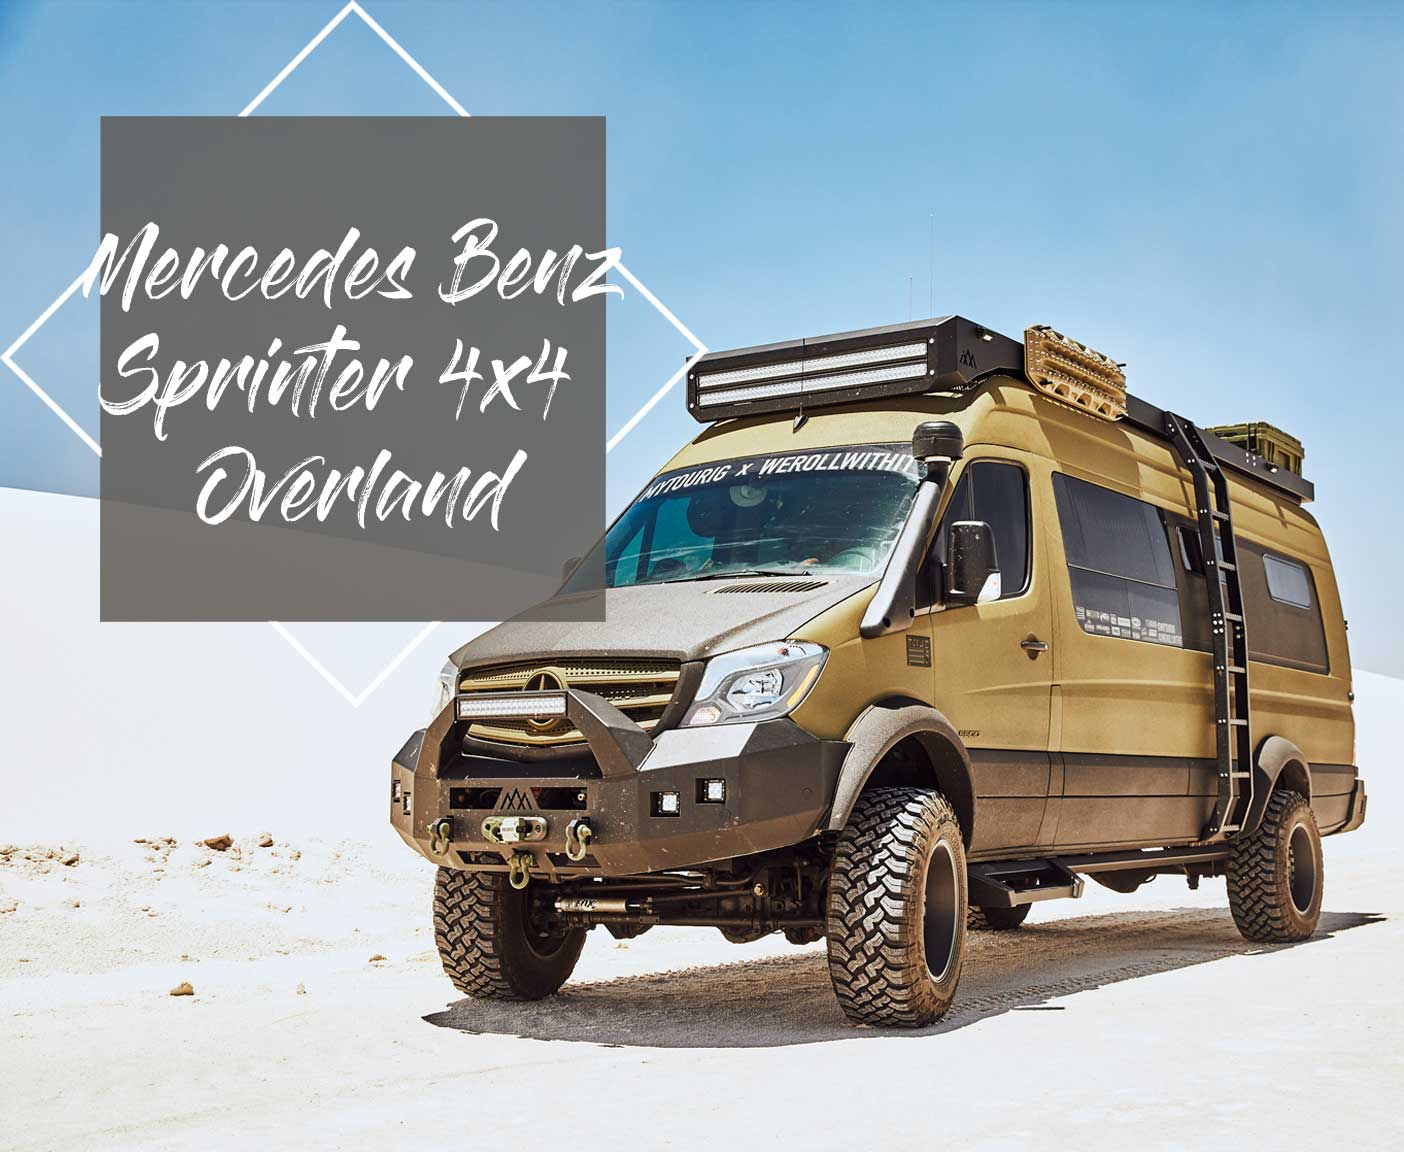 Mercedes-Benz-Sprinter-4x4-Overland